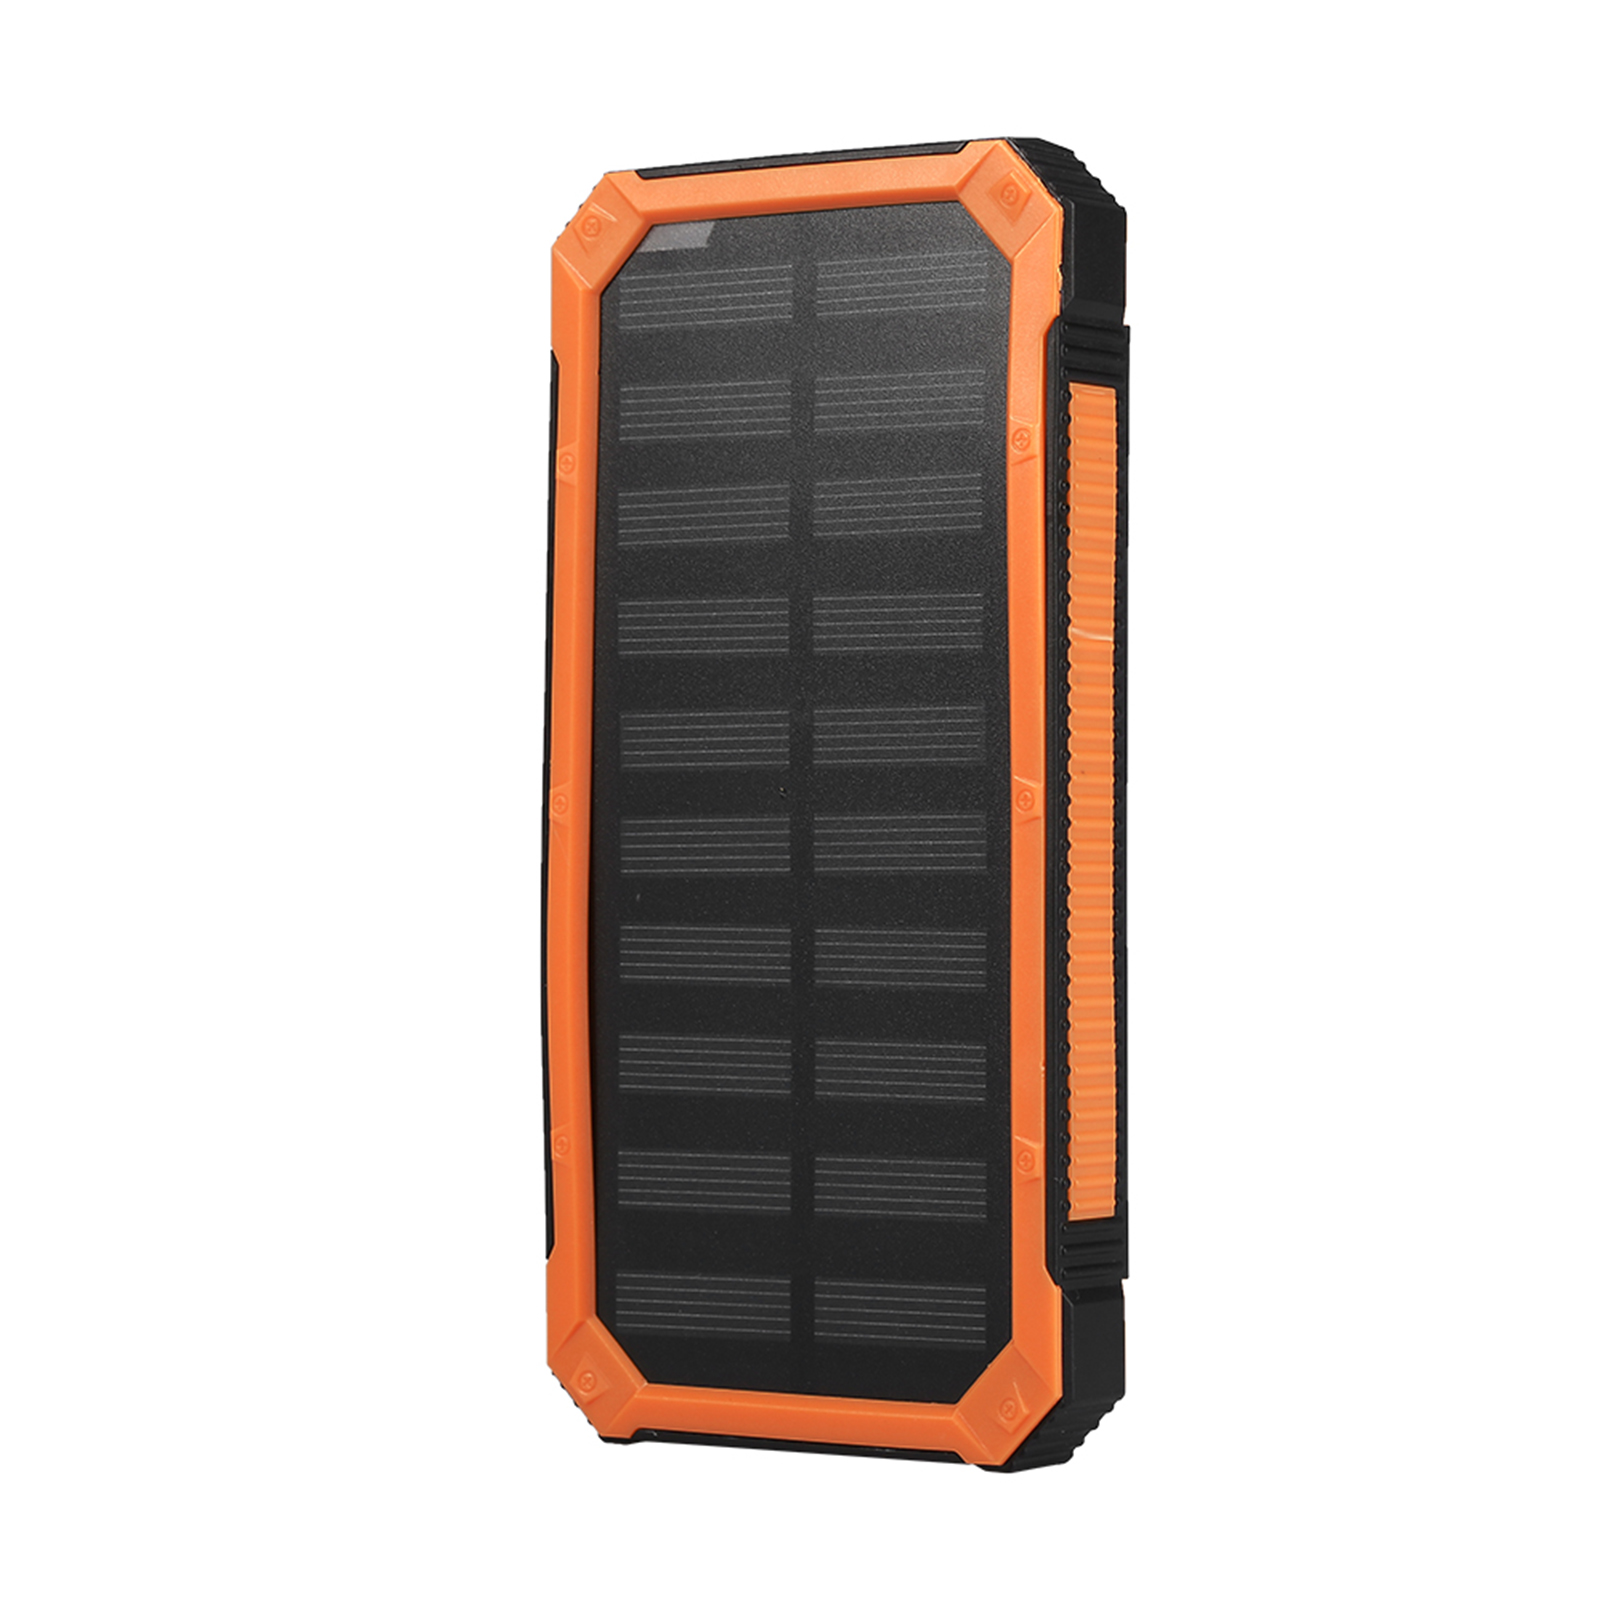 dual usb fast charge power bank case 20000mah solar. Black Bedroom Furniture Sets. Home Design Ideas